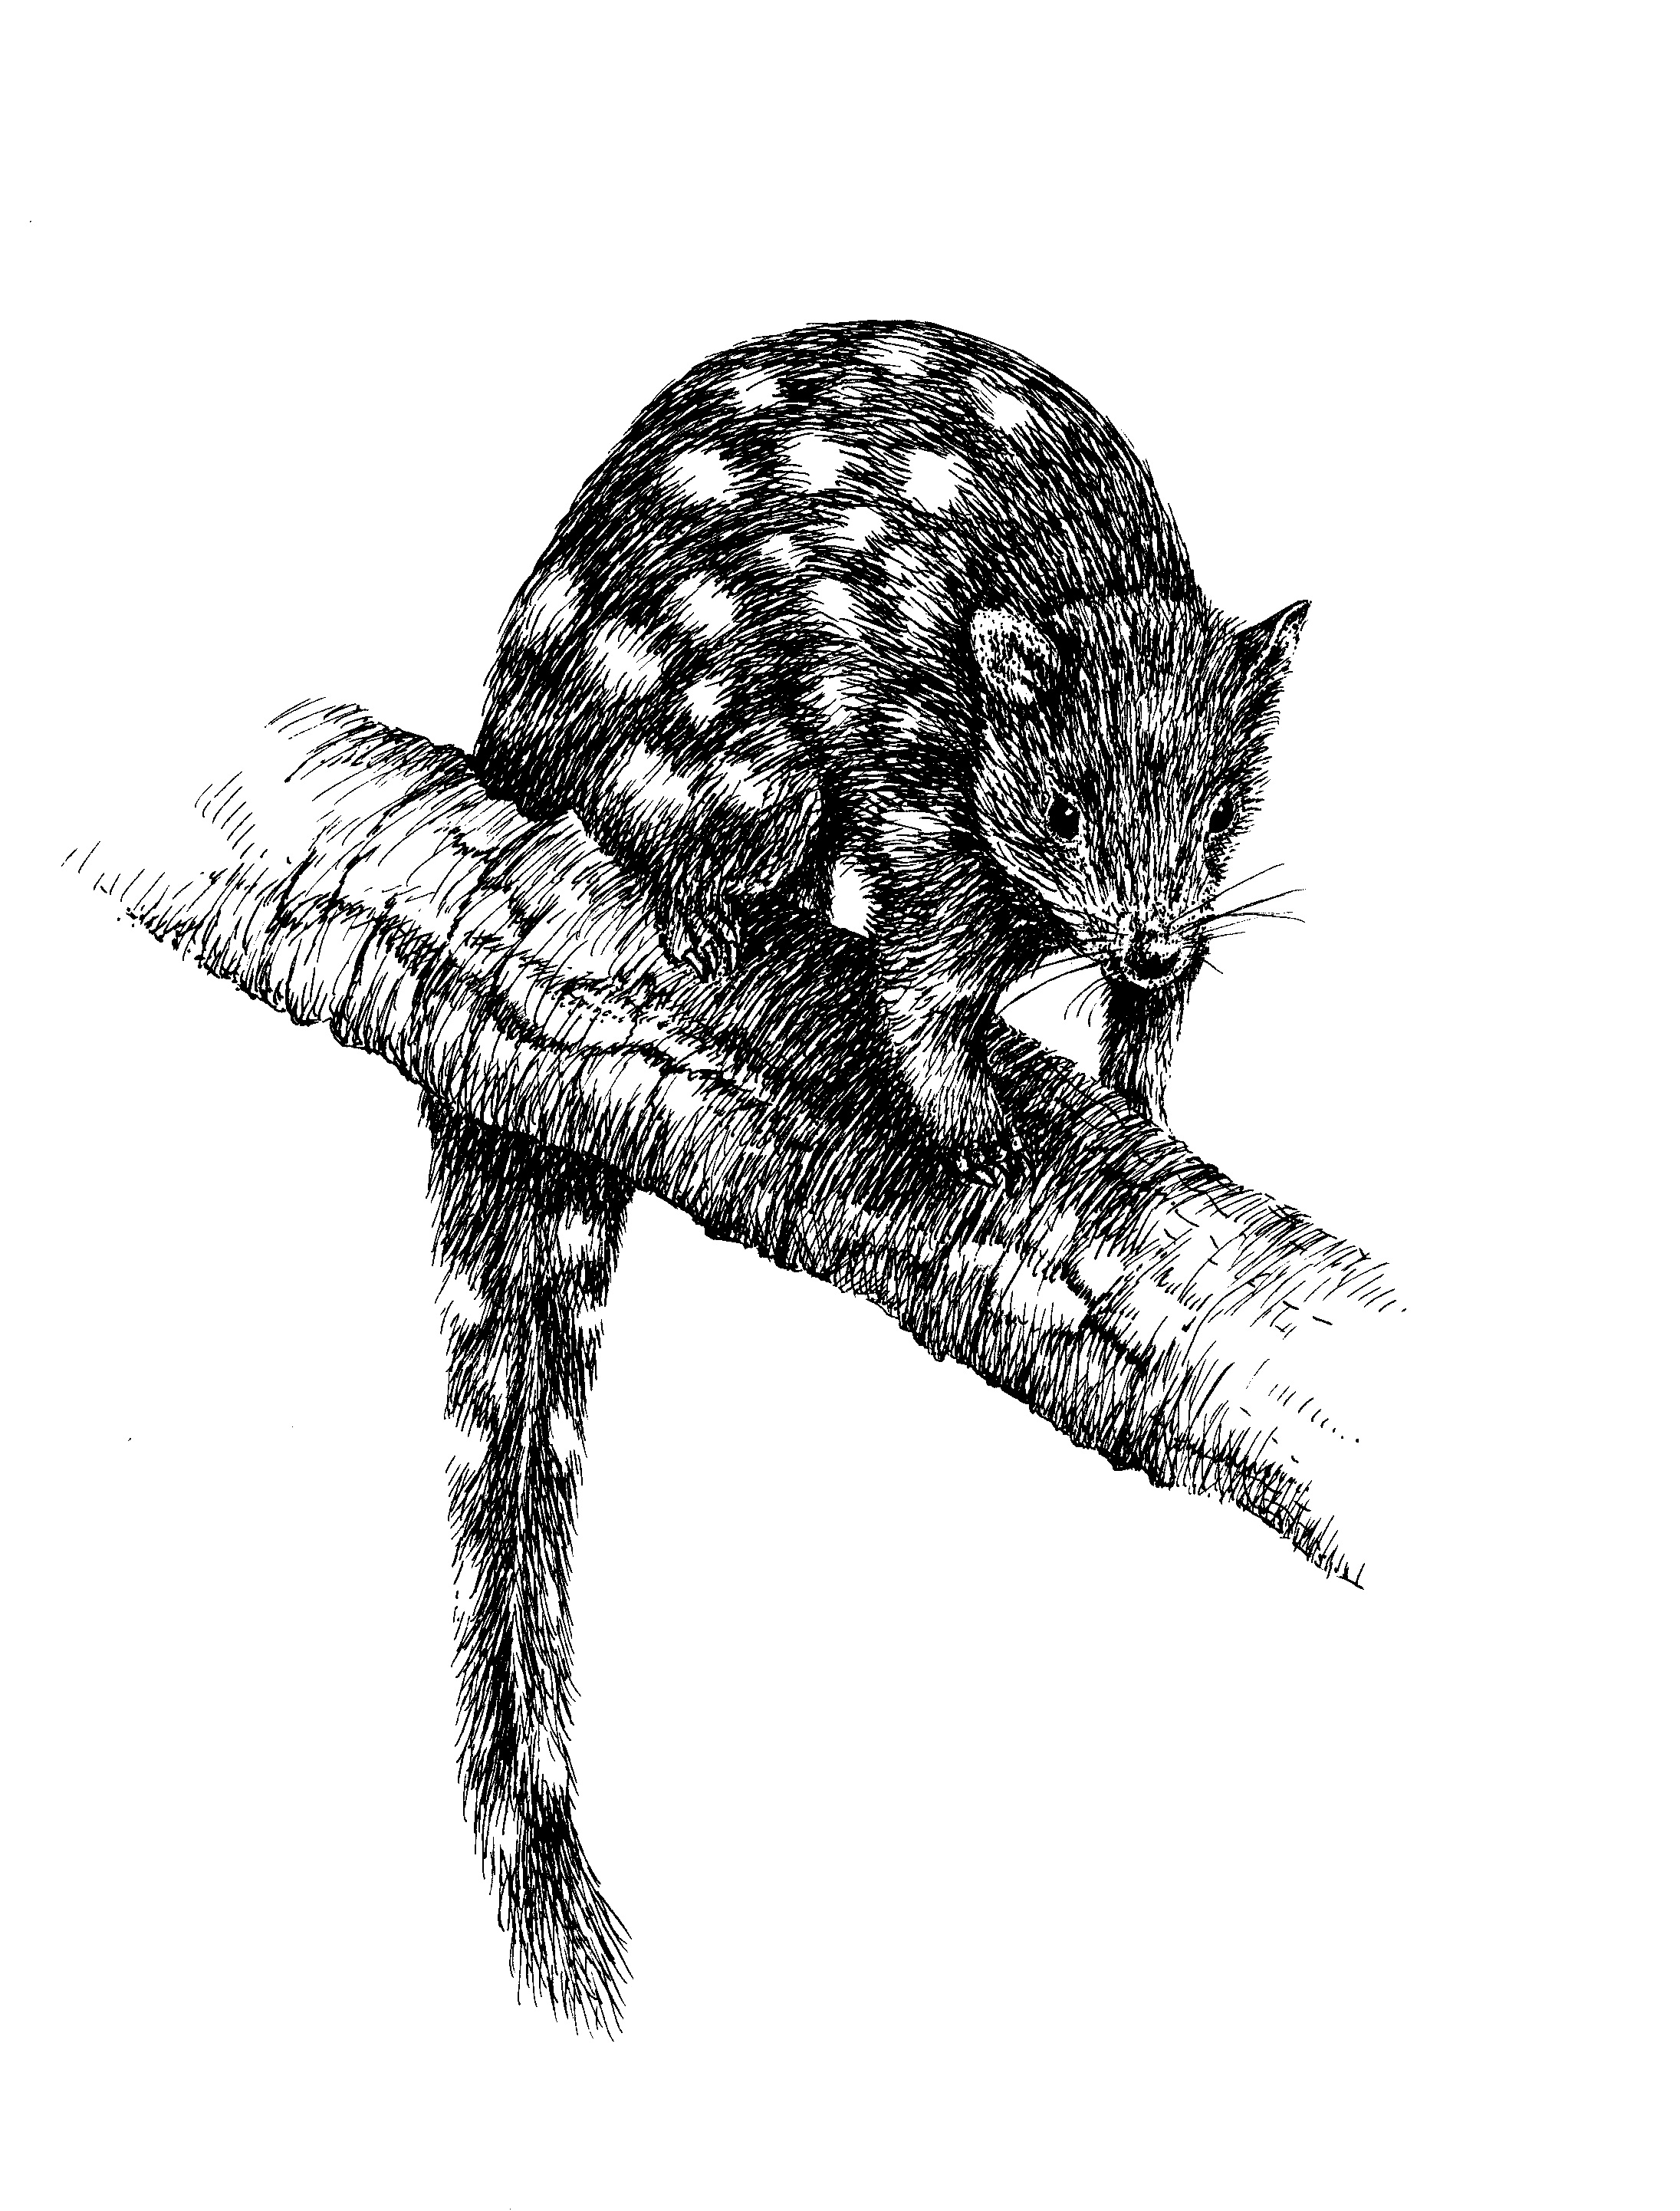 ​Black and white sketch of a quoll sitting on a branch​